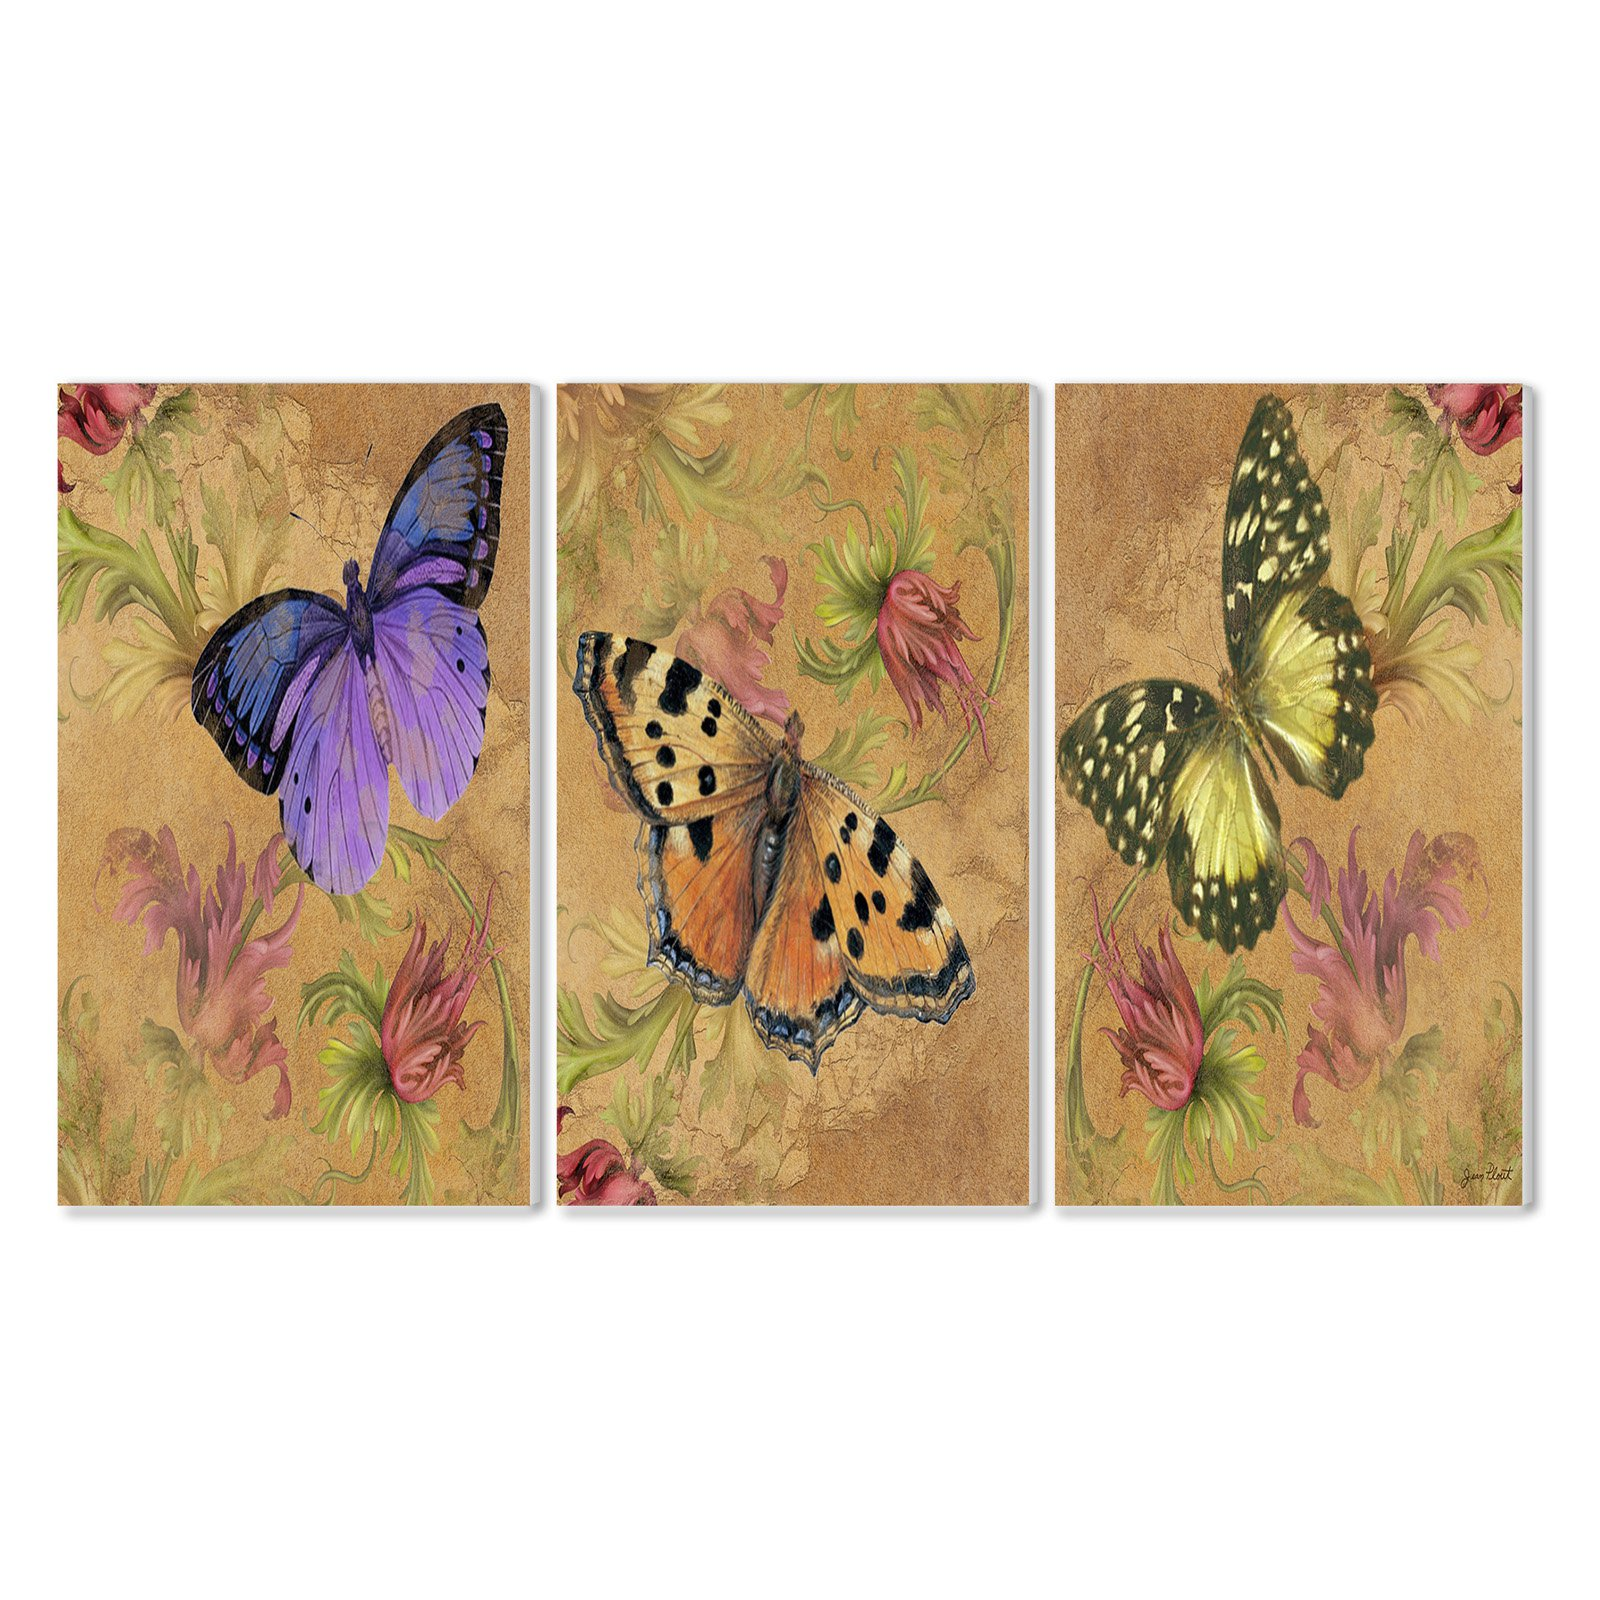 The Stupell Home Decor Collection Butterfly Garden Wall Plaque - Set of 3